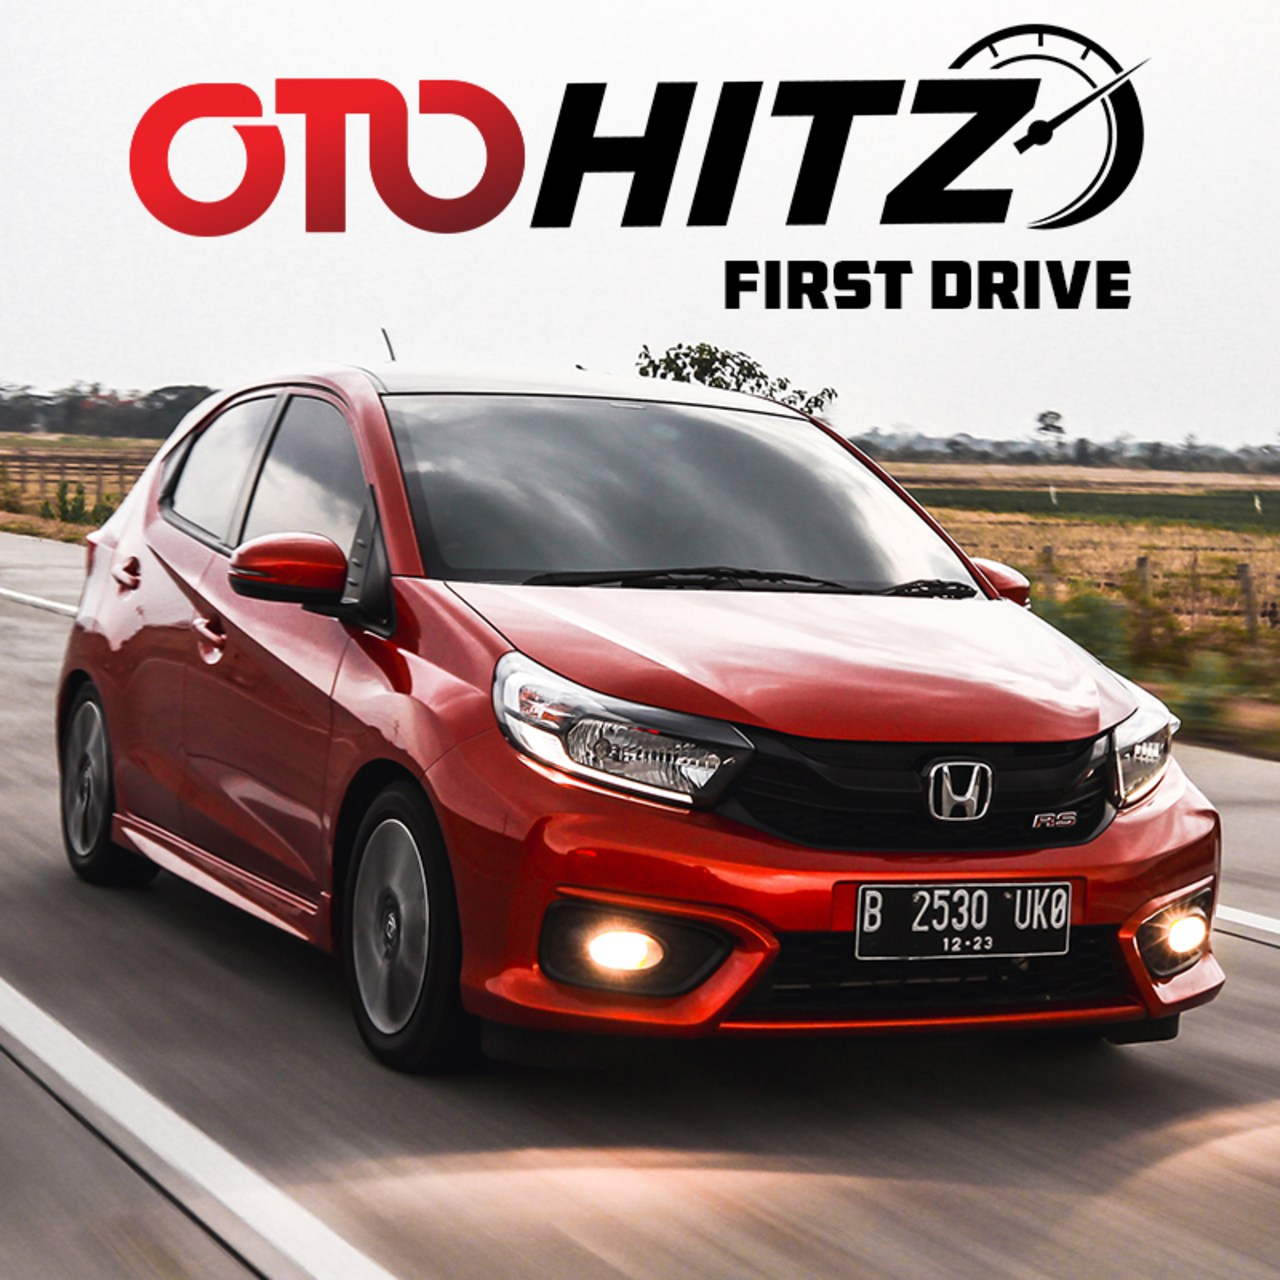 OTOHITZ, COVER, First Drive